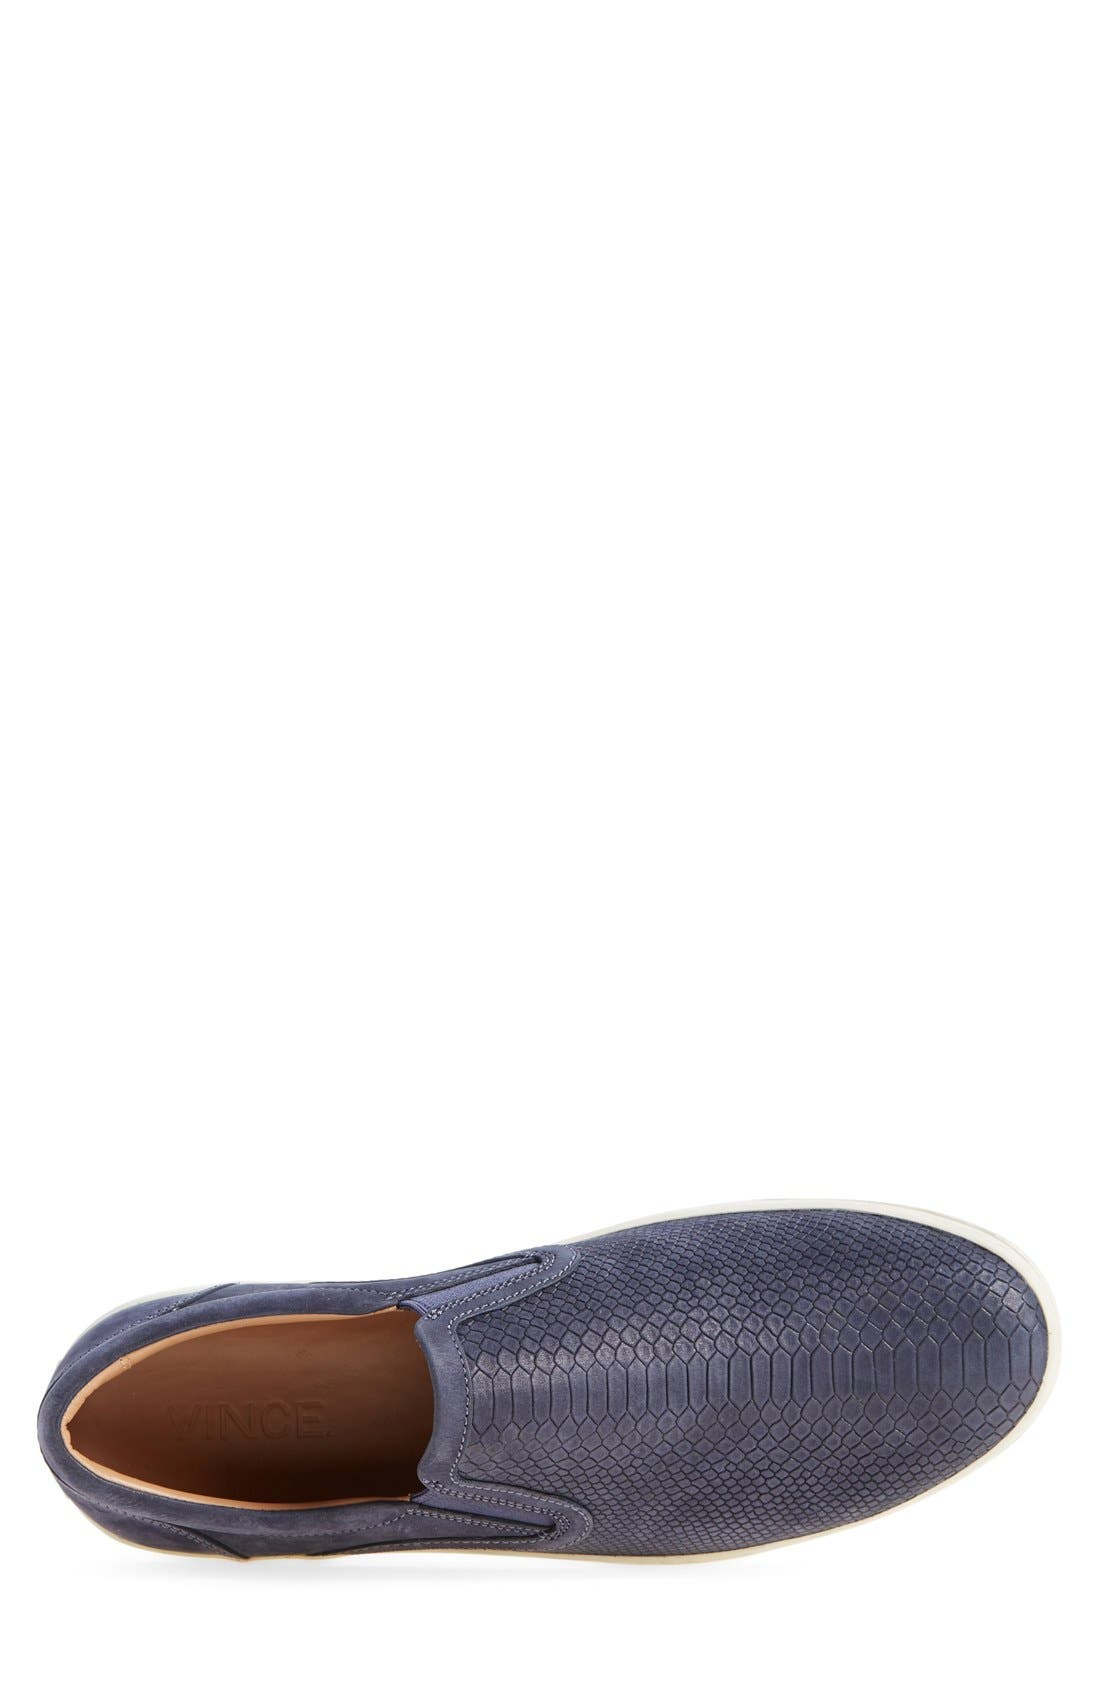 'Ace' Slip-On,                             Alternate thumbnail 3, color,                             Navy Leather